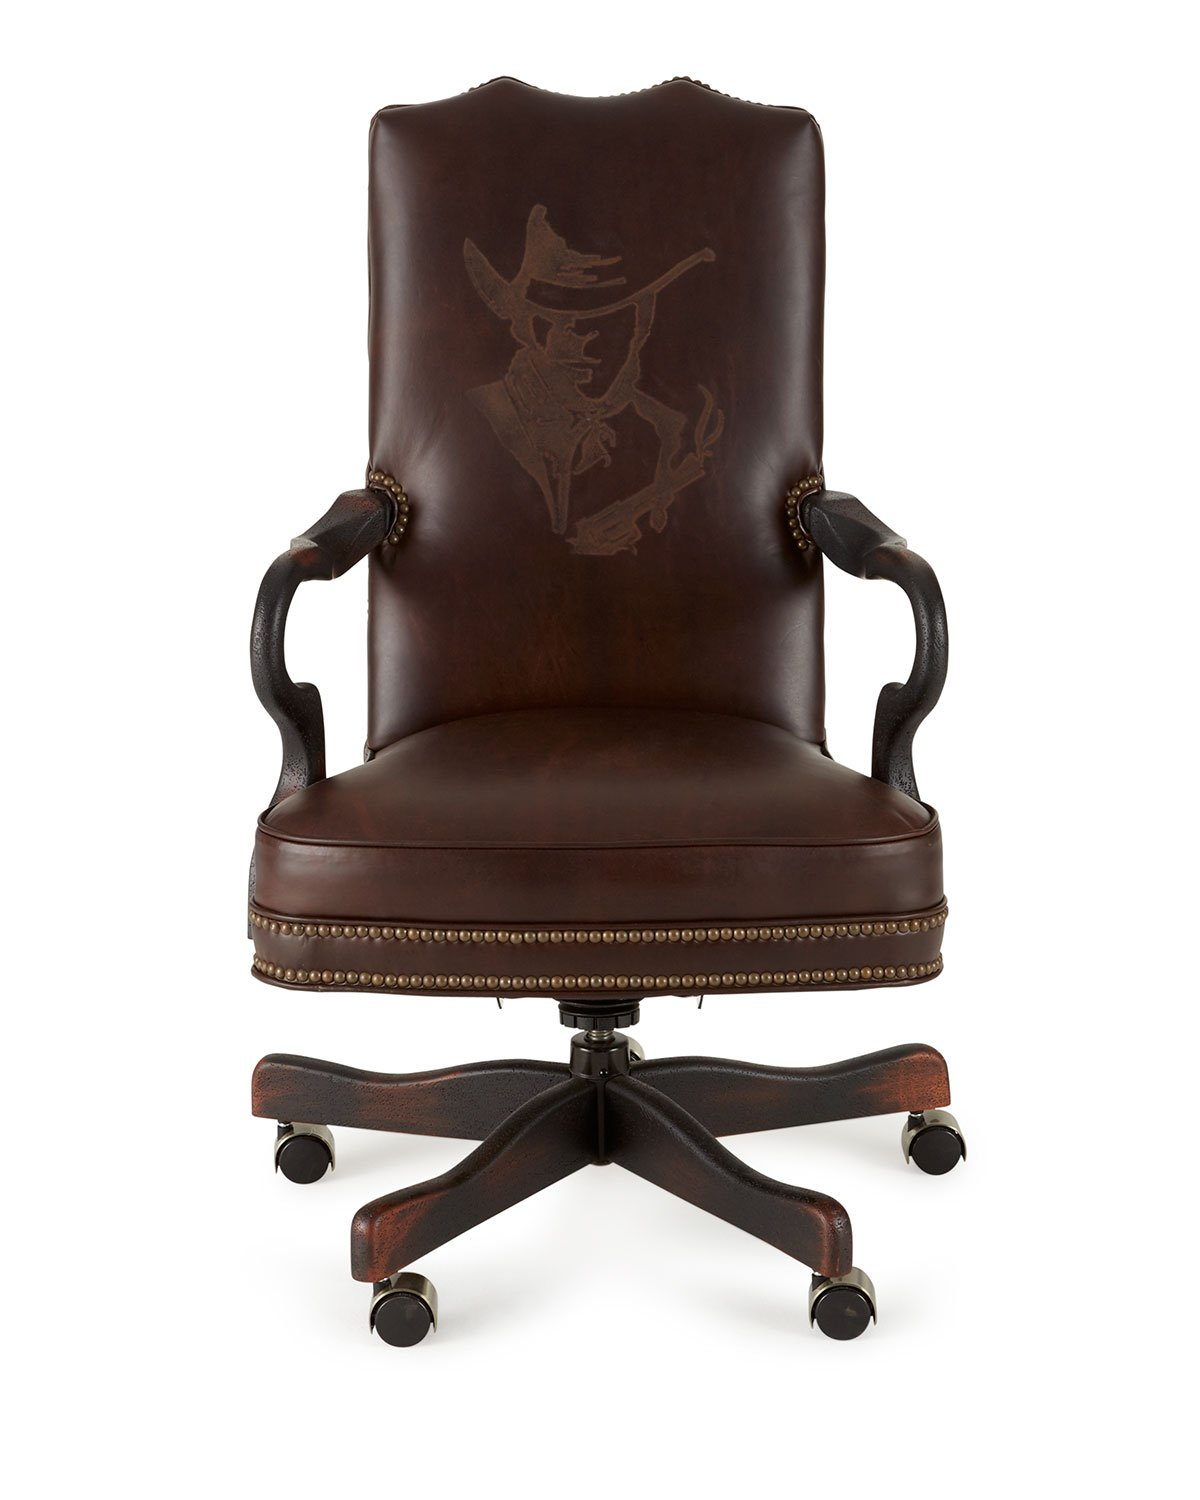 Clide Leather Office Chair in Sunslinger - Old Hickory Tannery